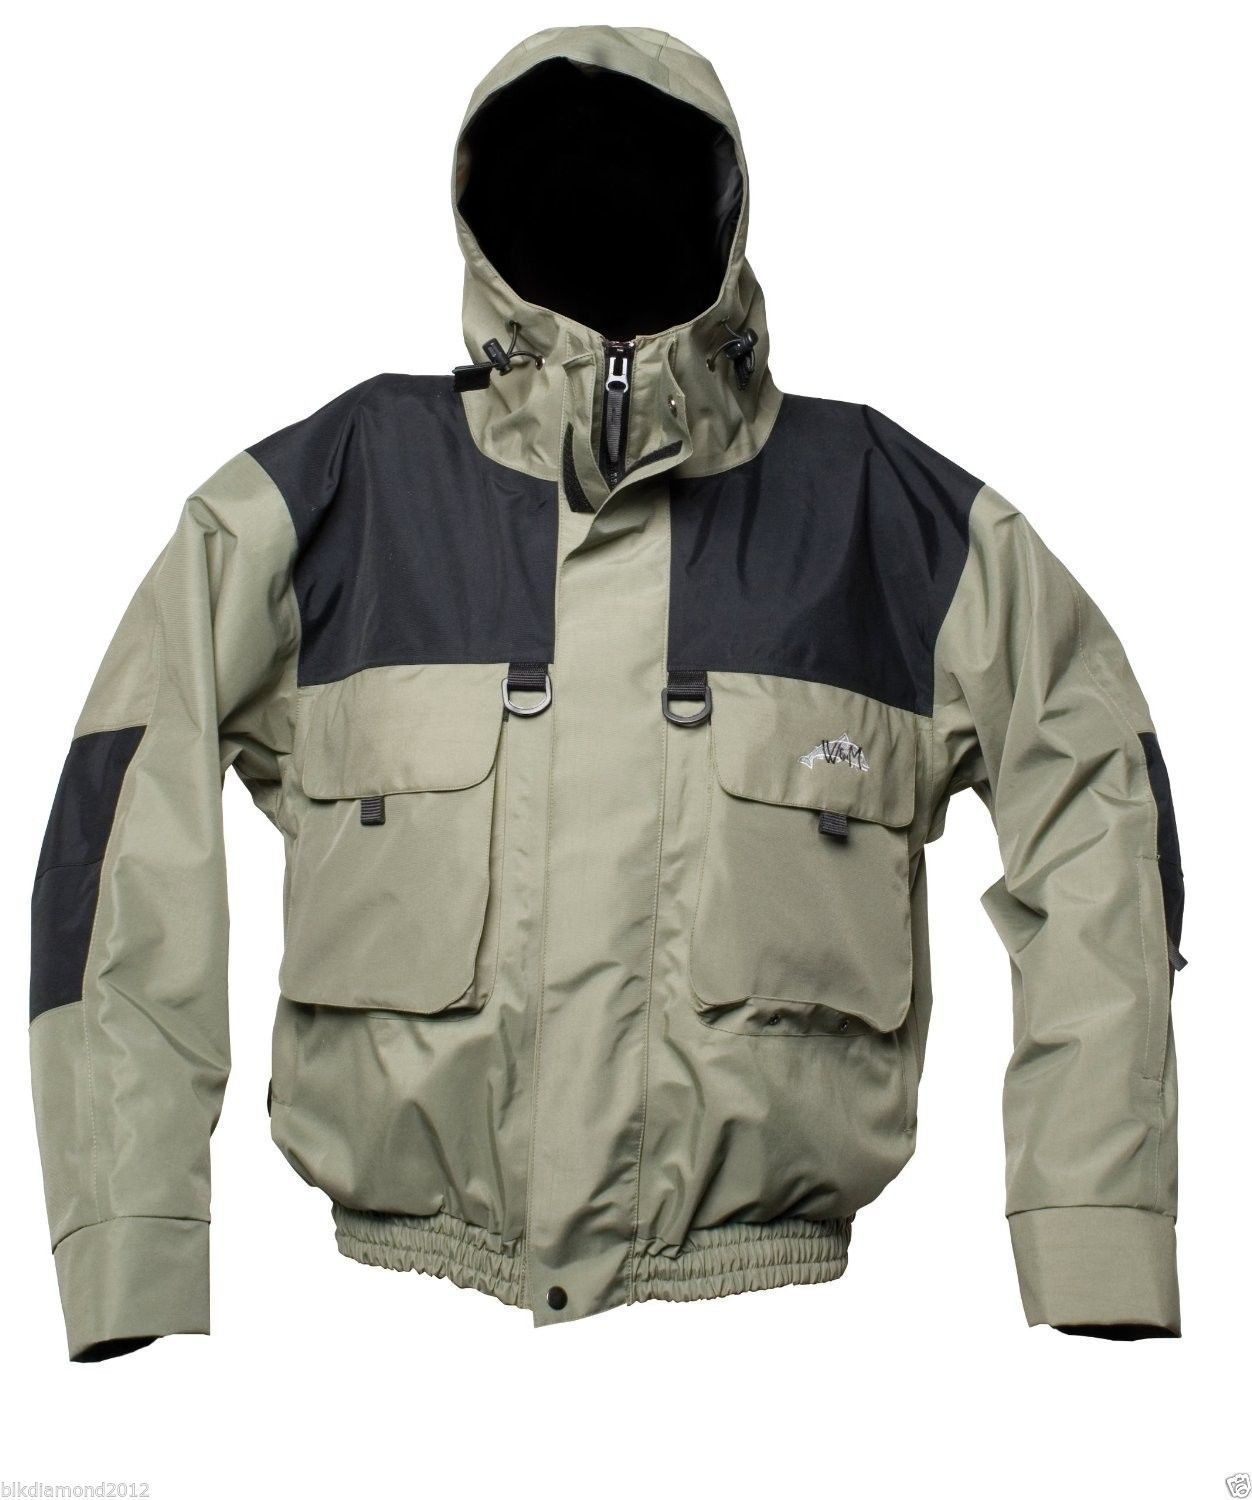 Wright Mcgill Big Horn Wading Jacket Size Medium Fishing Outdoor Msrp 219 Trout Fishing Fly Fishing Gear Jackets